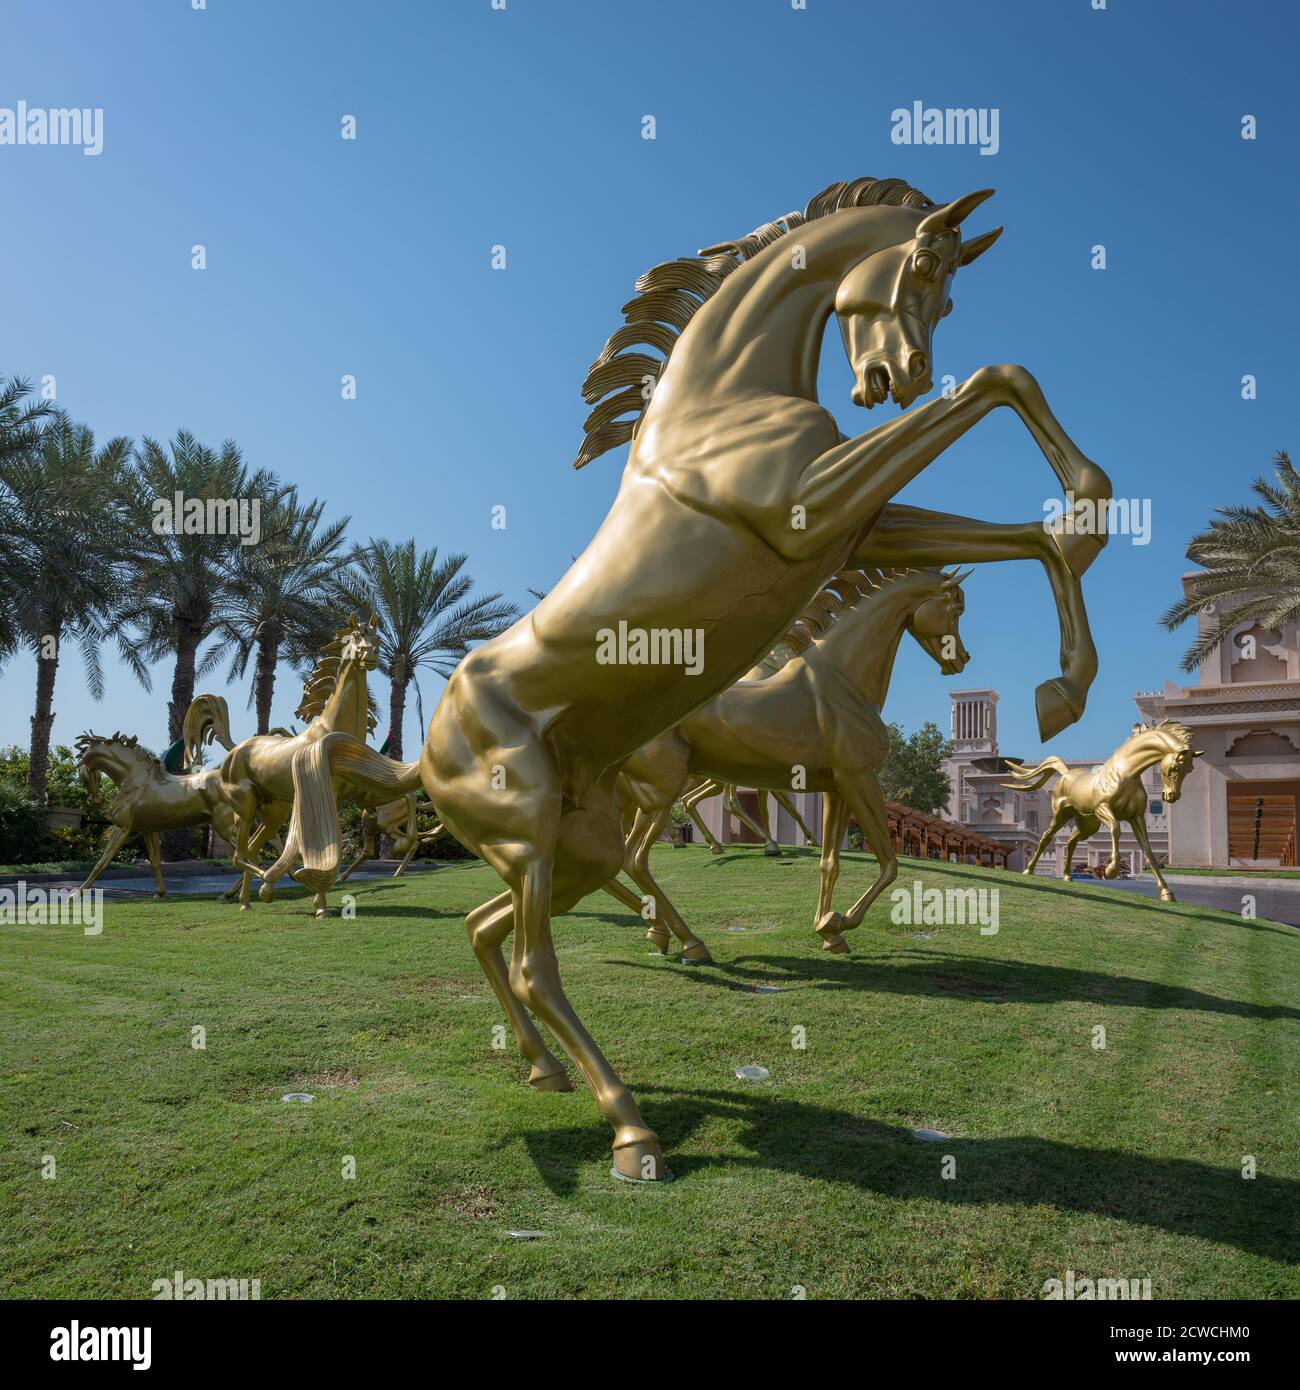 Arabian Horses Dubai High Resolution Stock Photography And Images Alamy